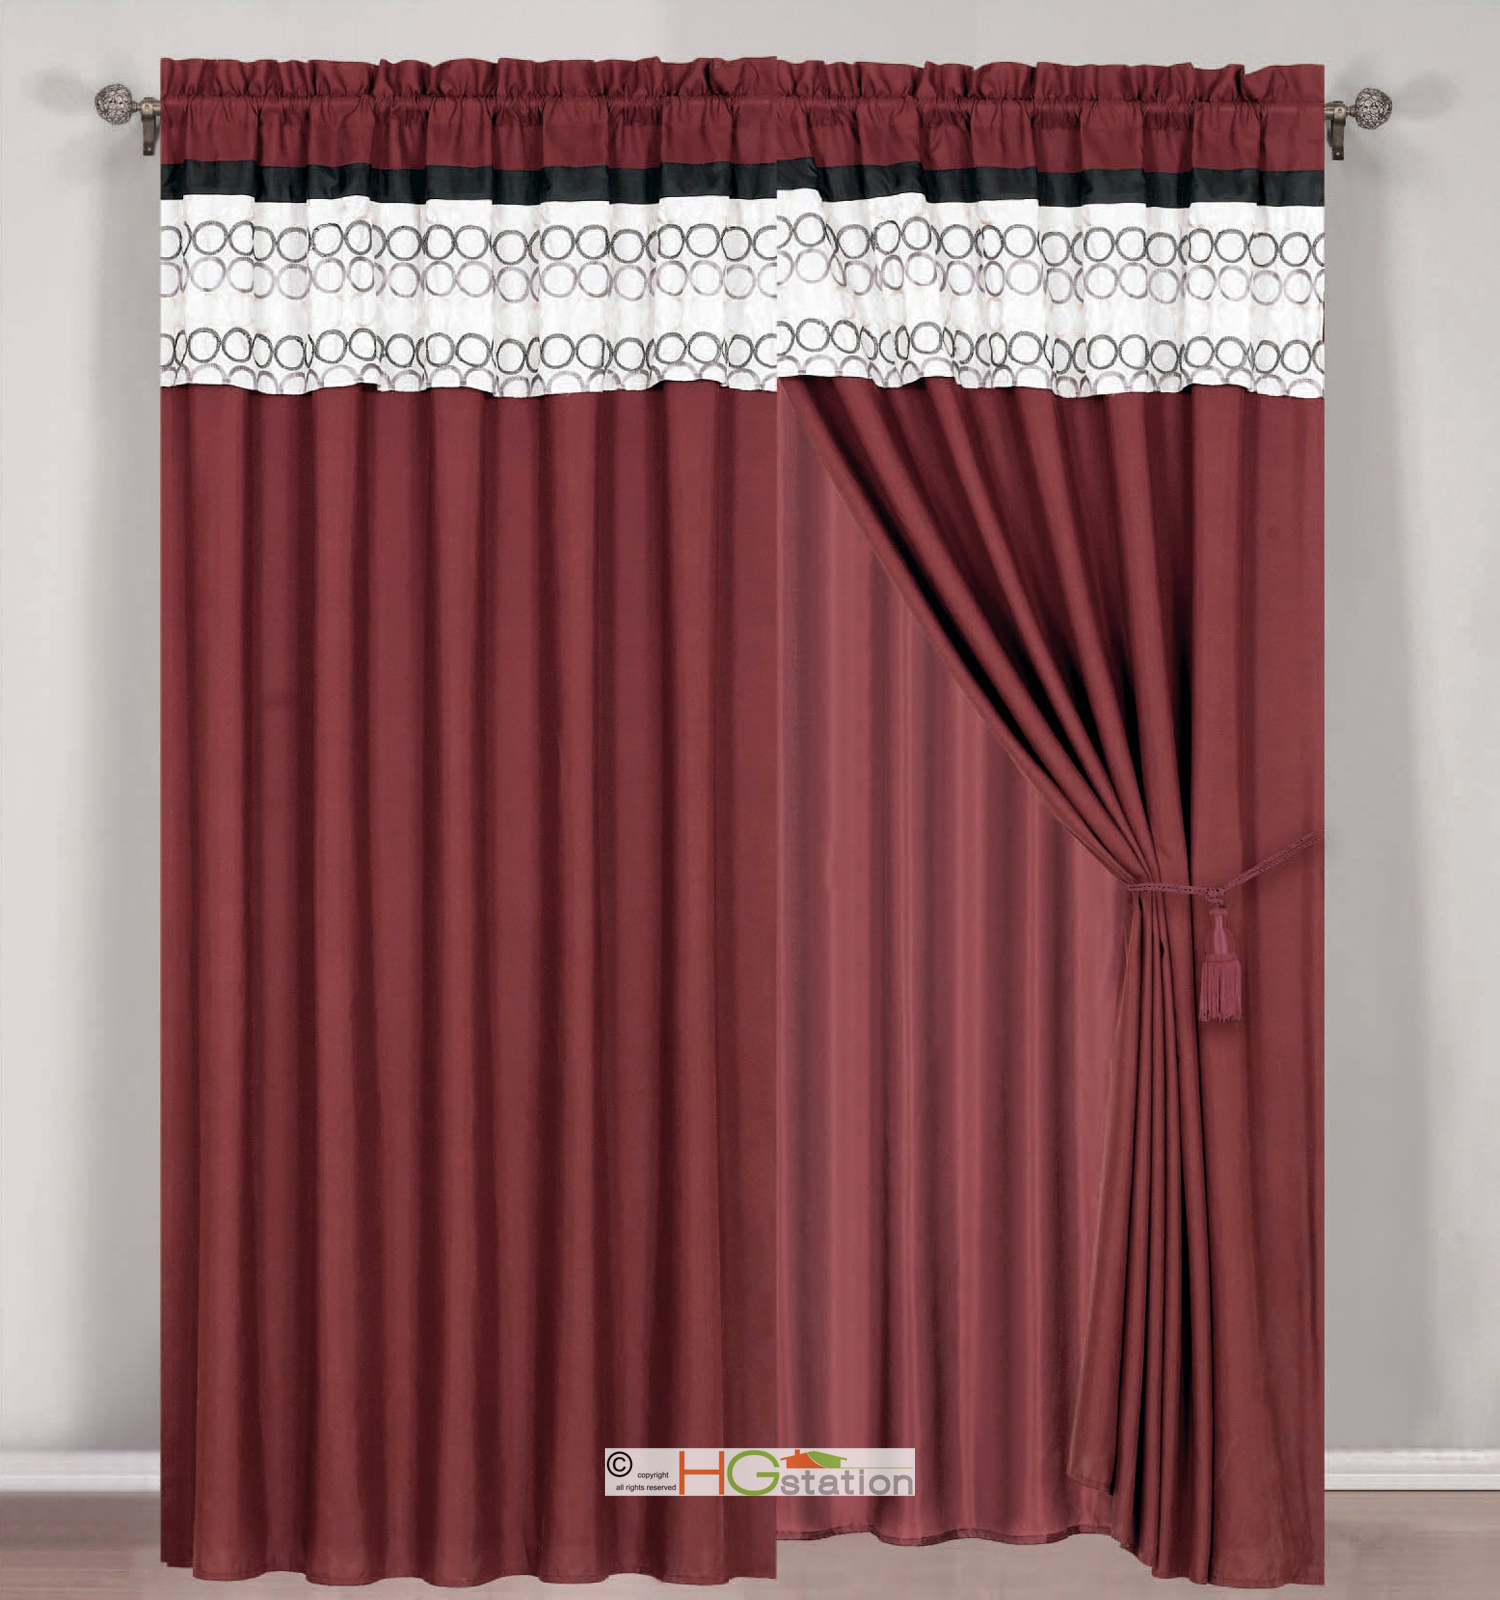 4 Pc Circle Embroidery Striped Curtain Set Burgundy Black